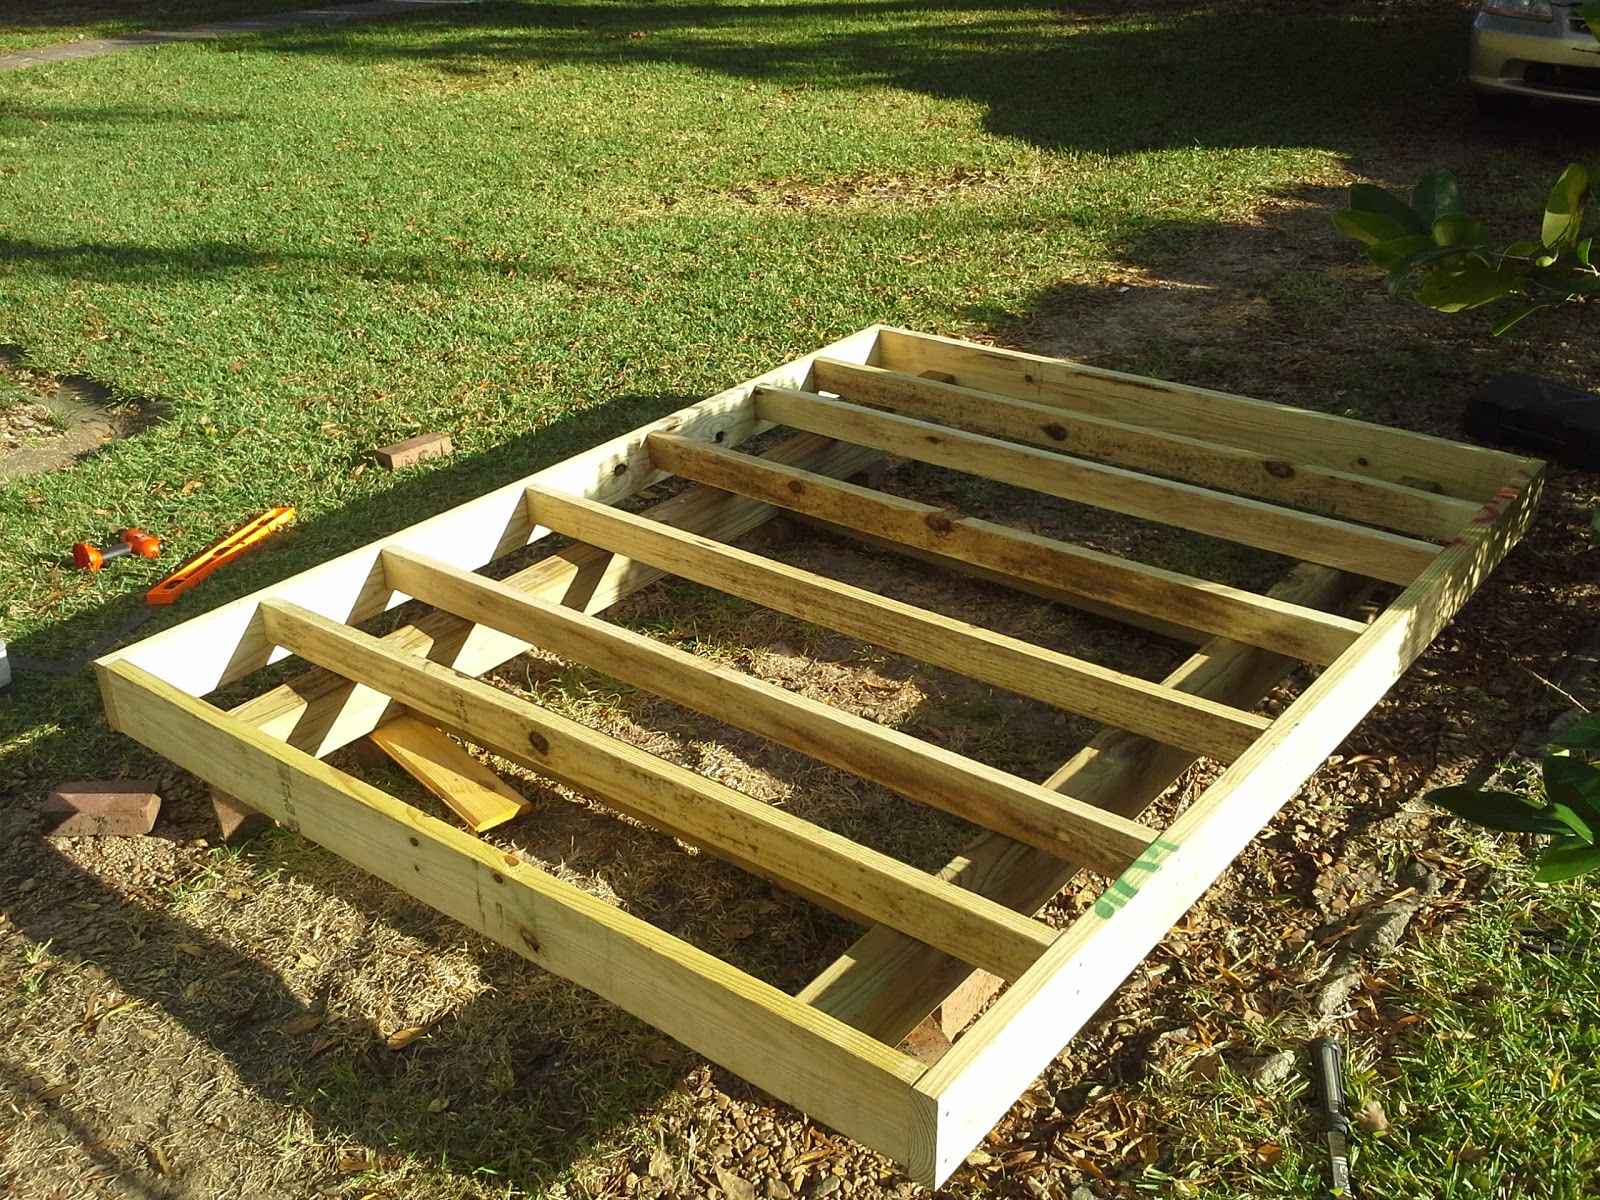 Donn: Shed Skid Foundation 8x10x12x14x16x18x20x22x24